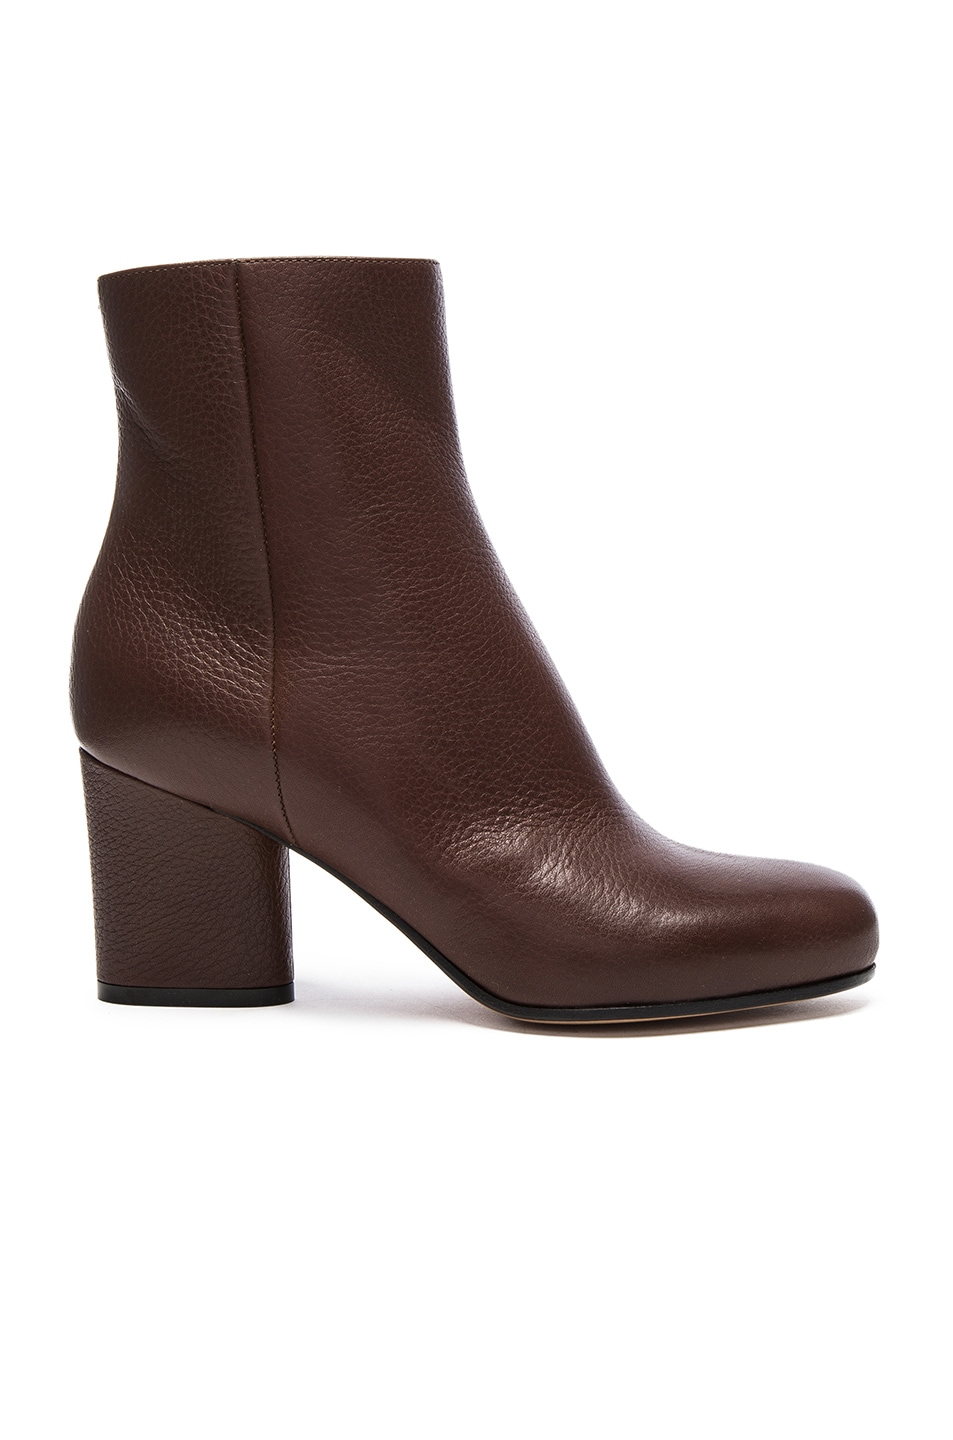 Image 1 of Maison Margiela Embossed Leather Booties in Dark Brown